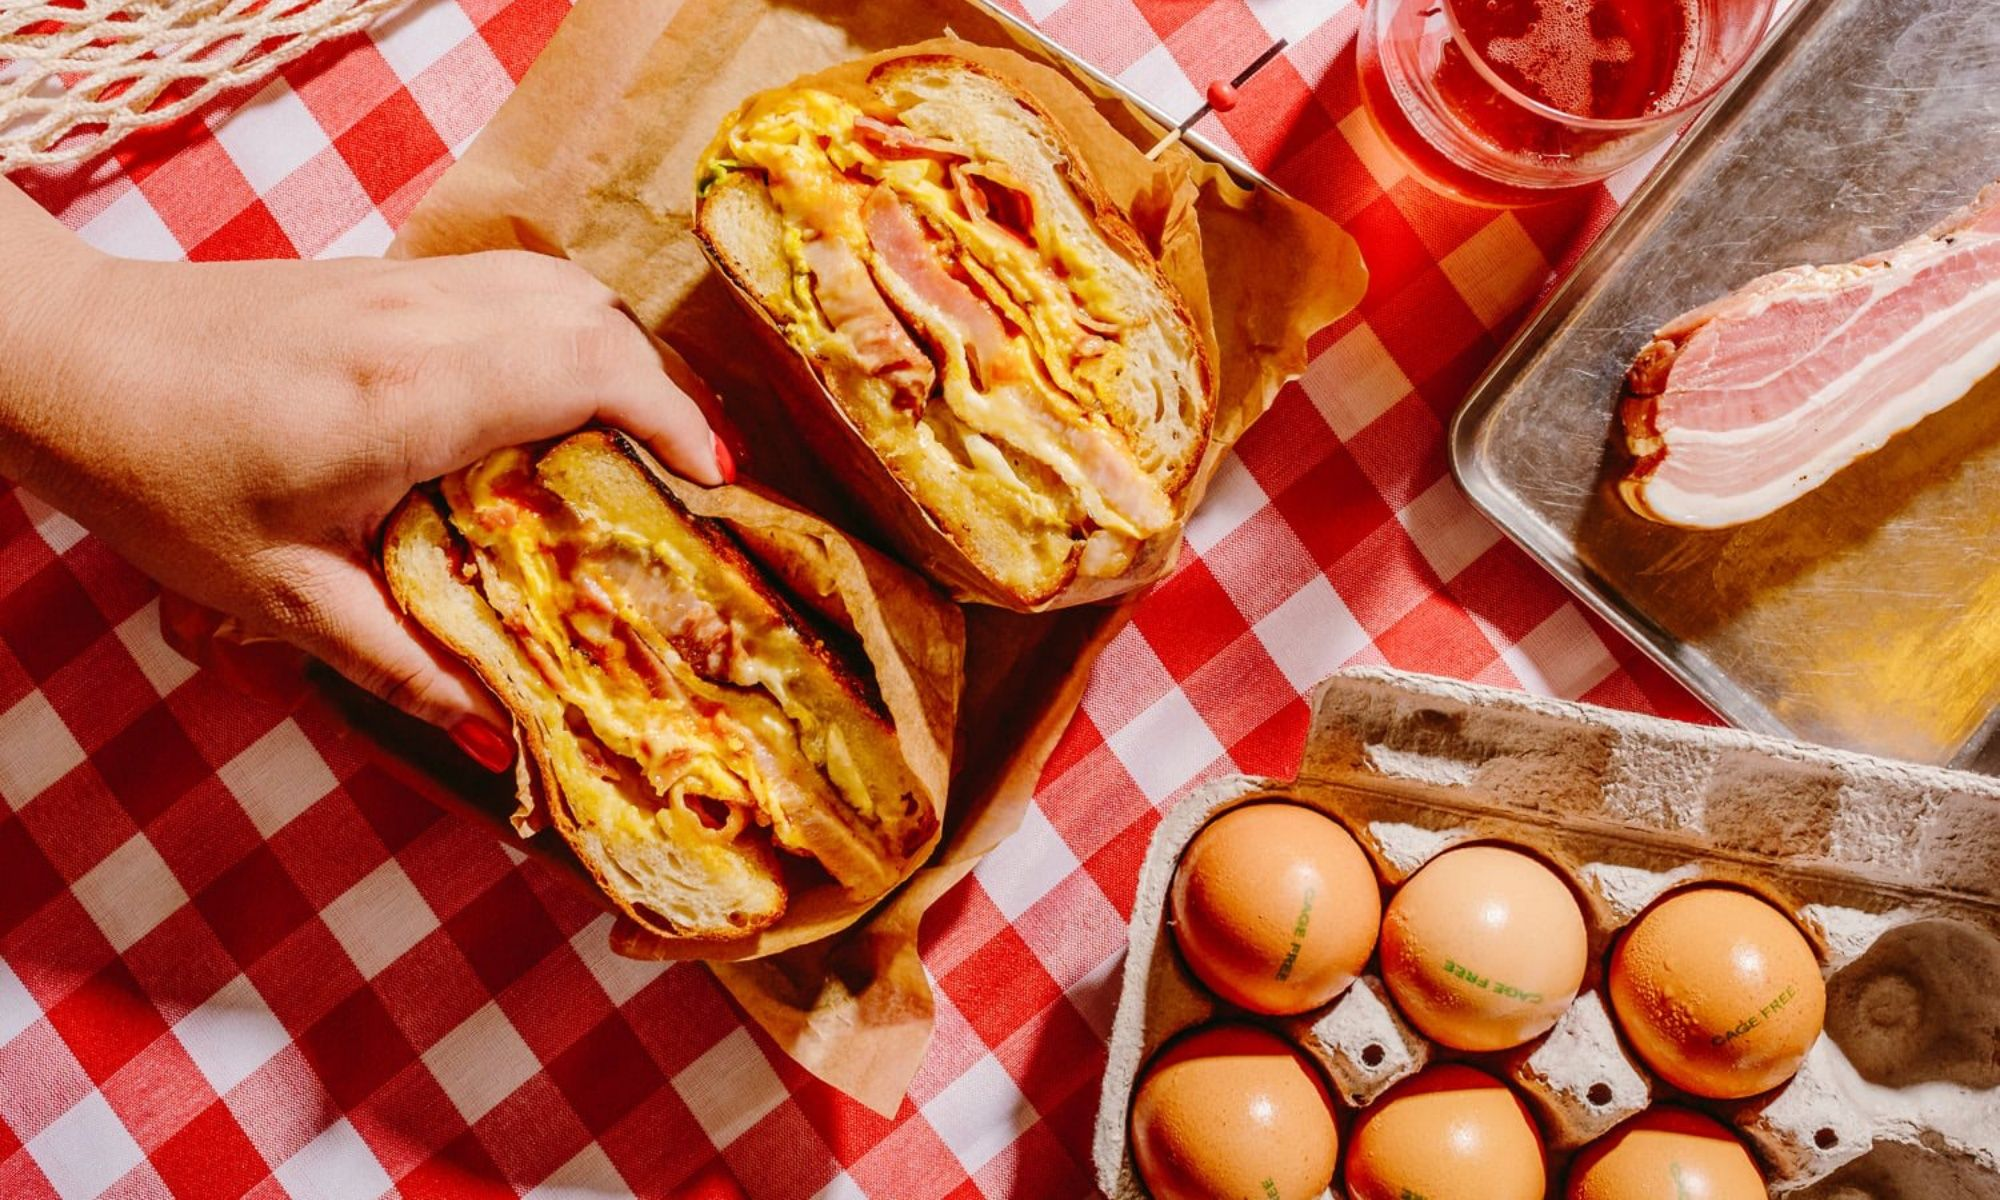 Where to Find New York City-Style Bodega Sandwiches in Hong Kong